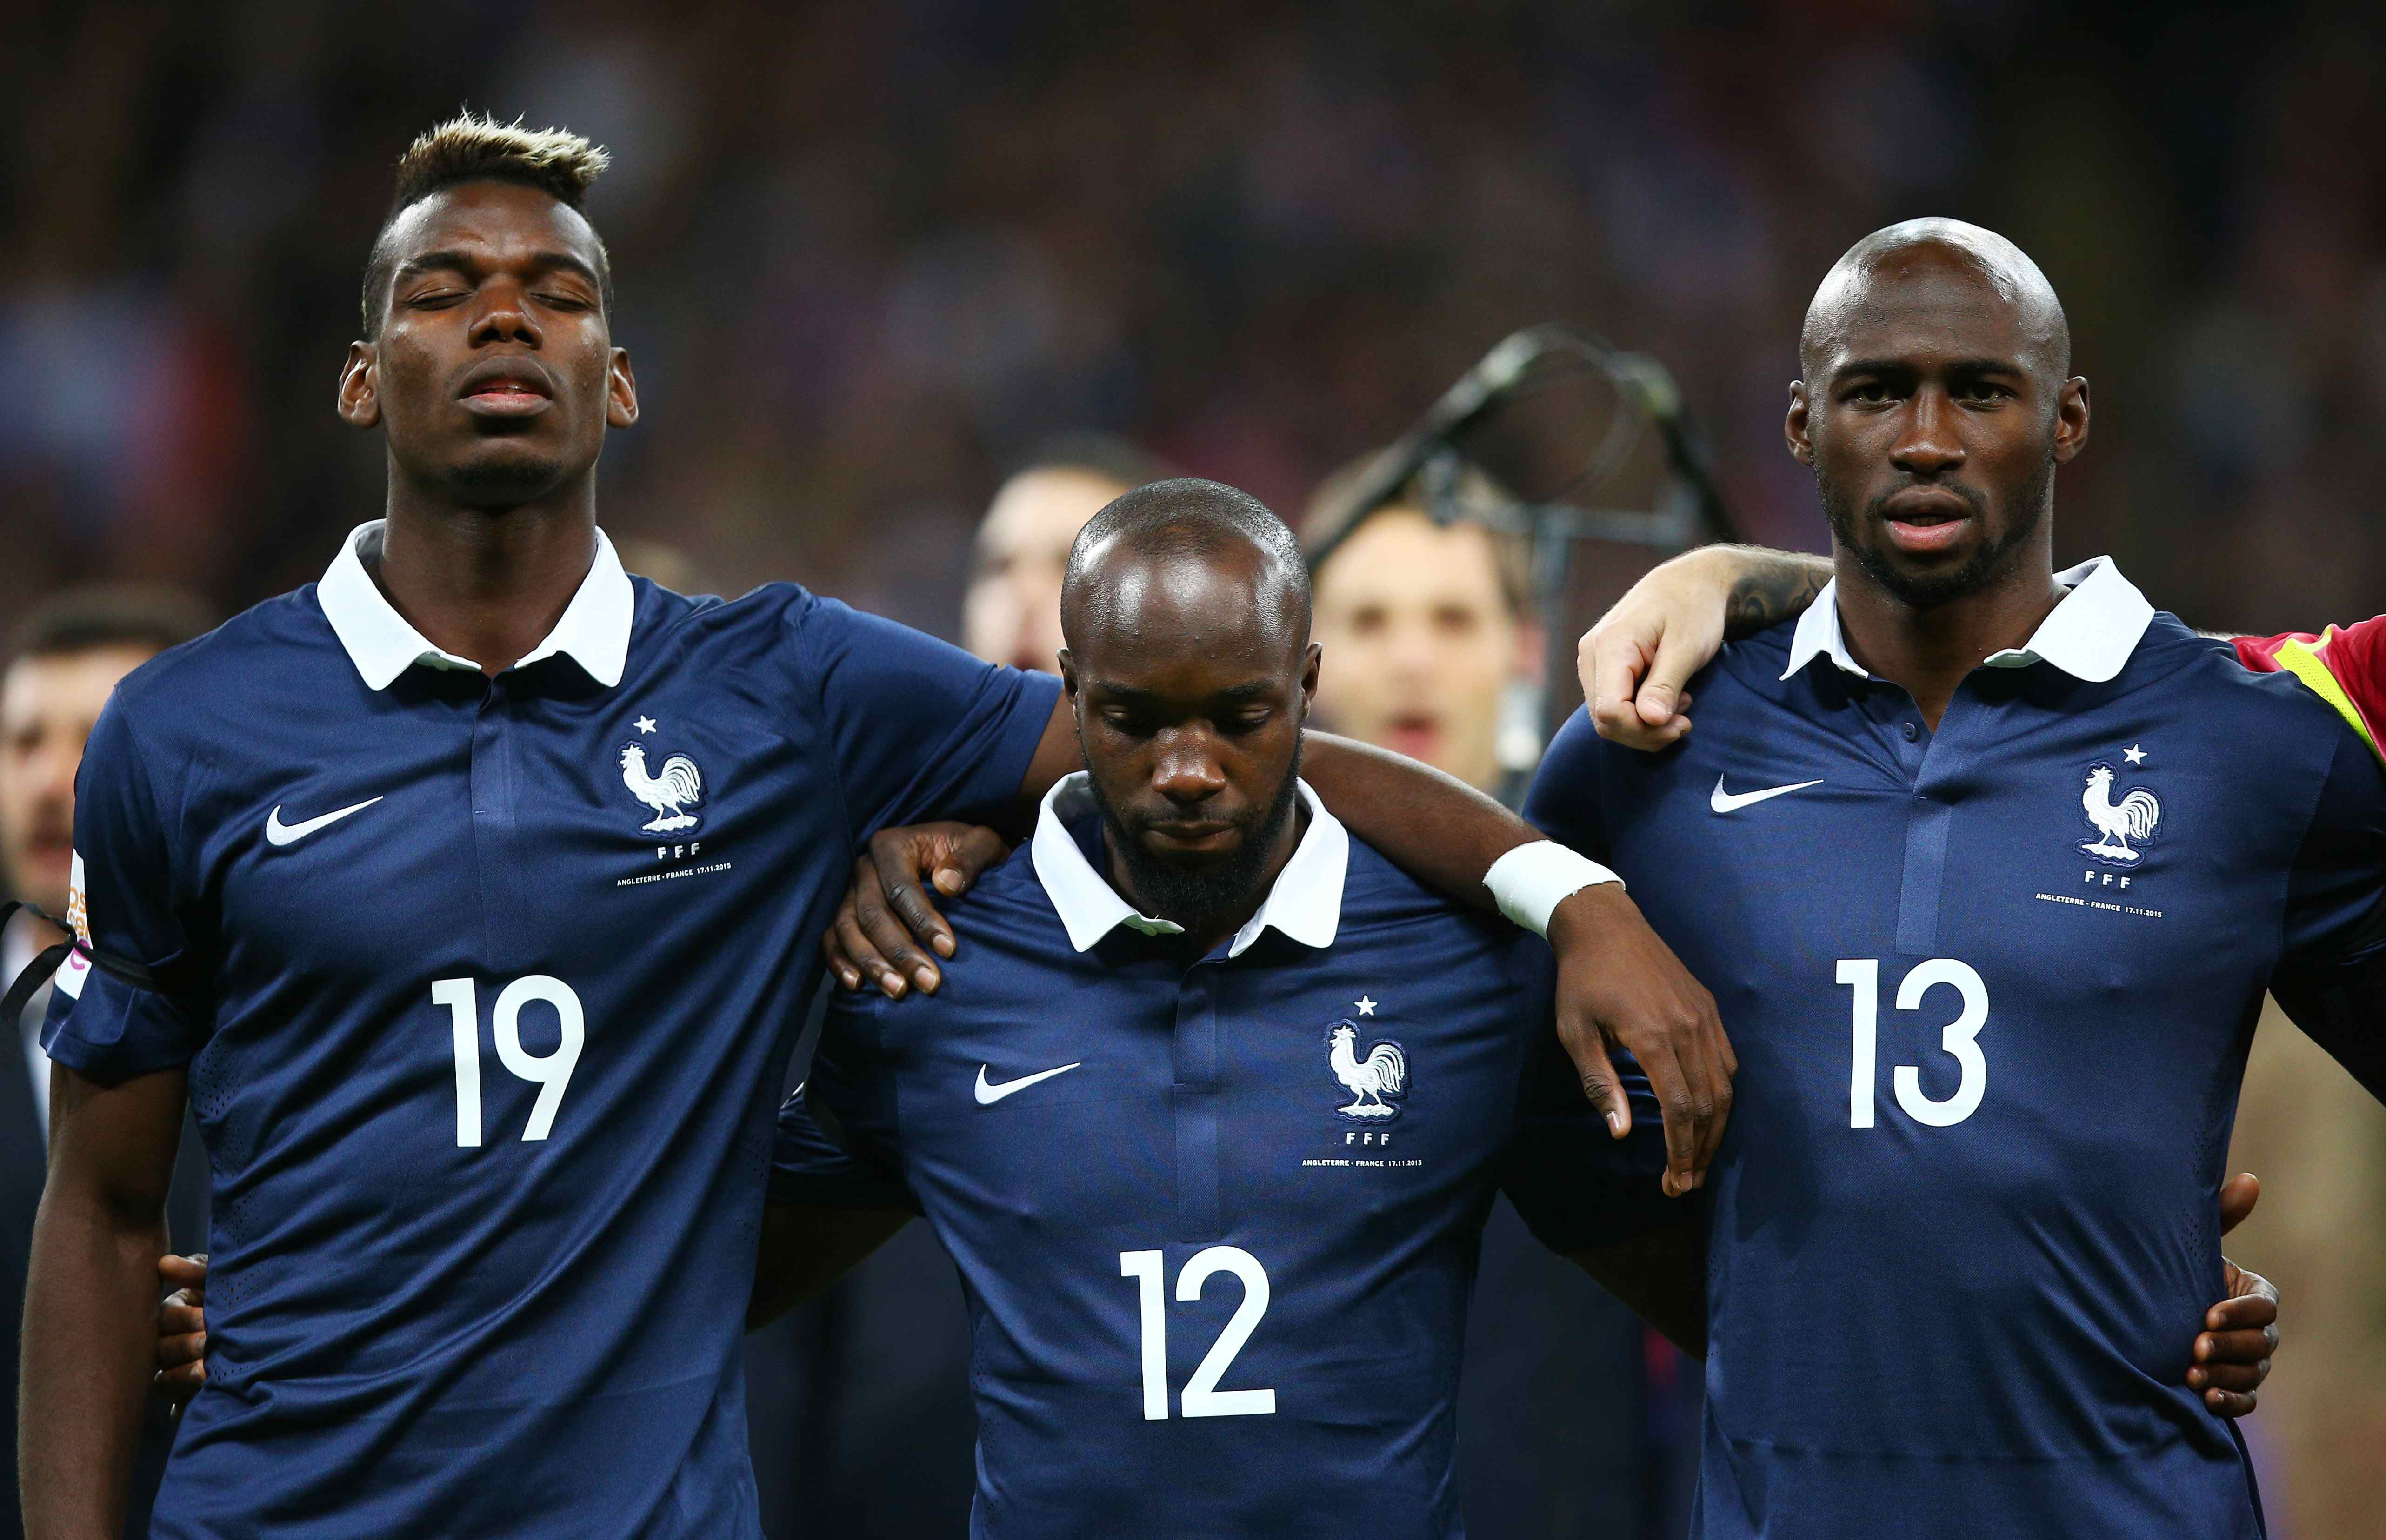 LONDON, ENGLAND - NOVEMBER 17: (L to R) Paul Pogba, Lassana Diarra and Eliaquim Mangala of France line up for the national an